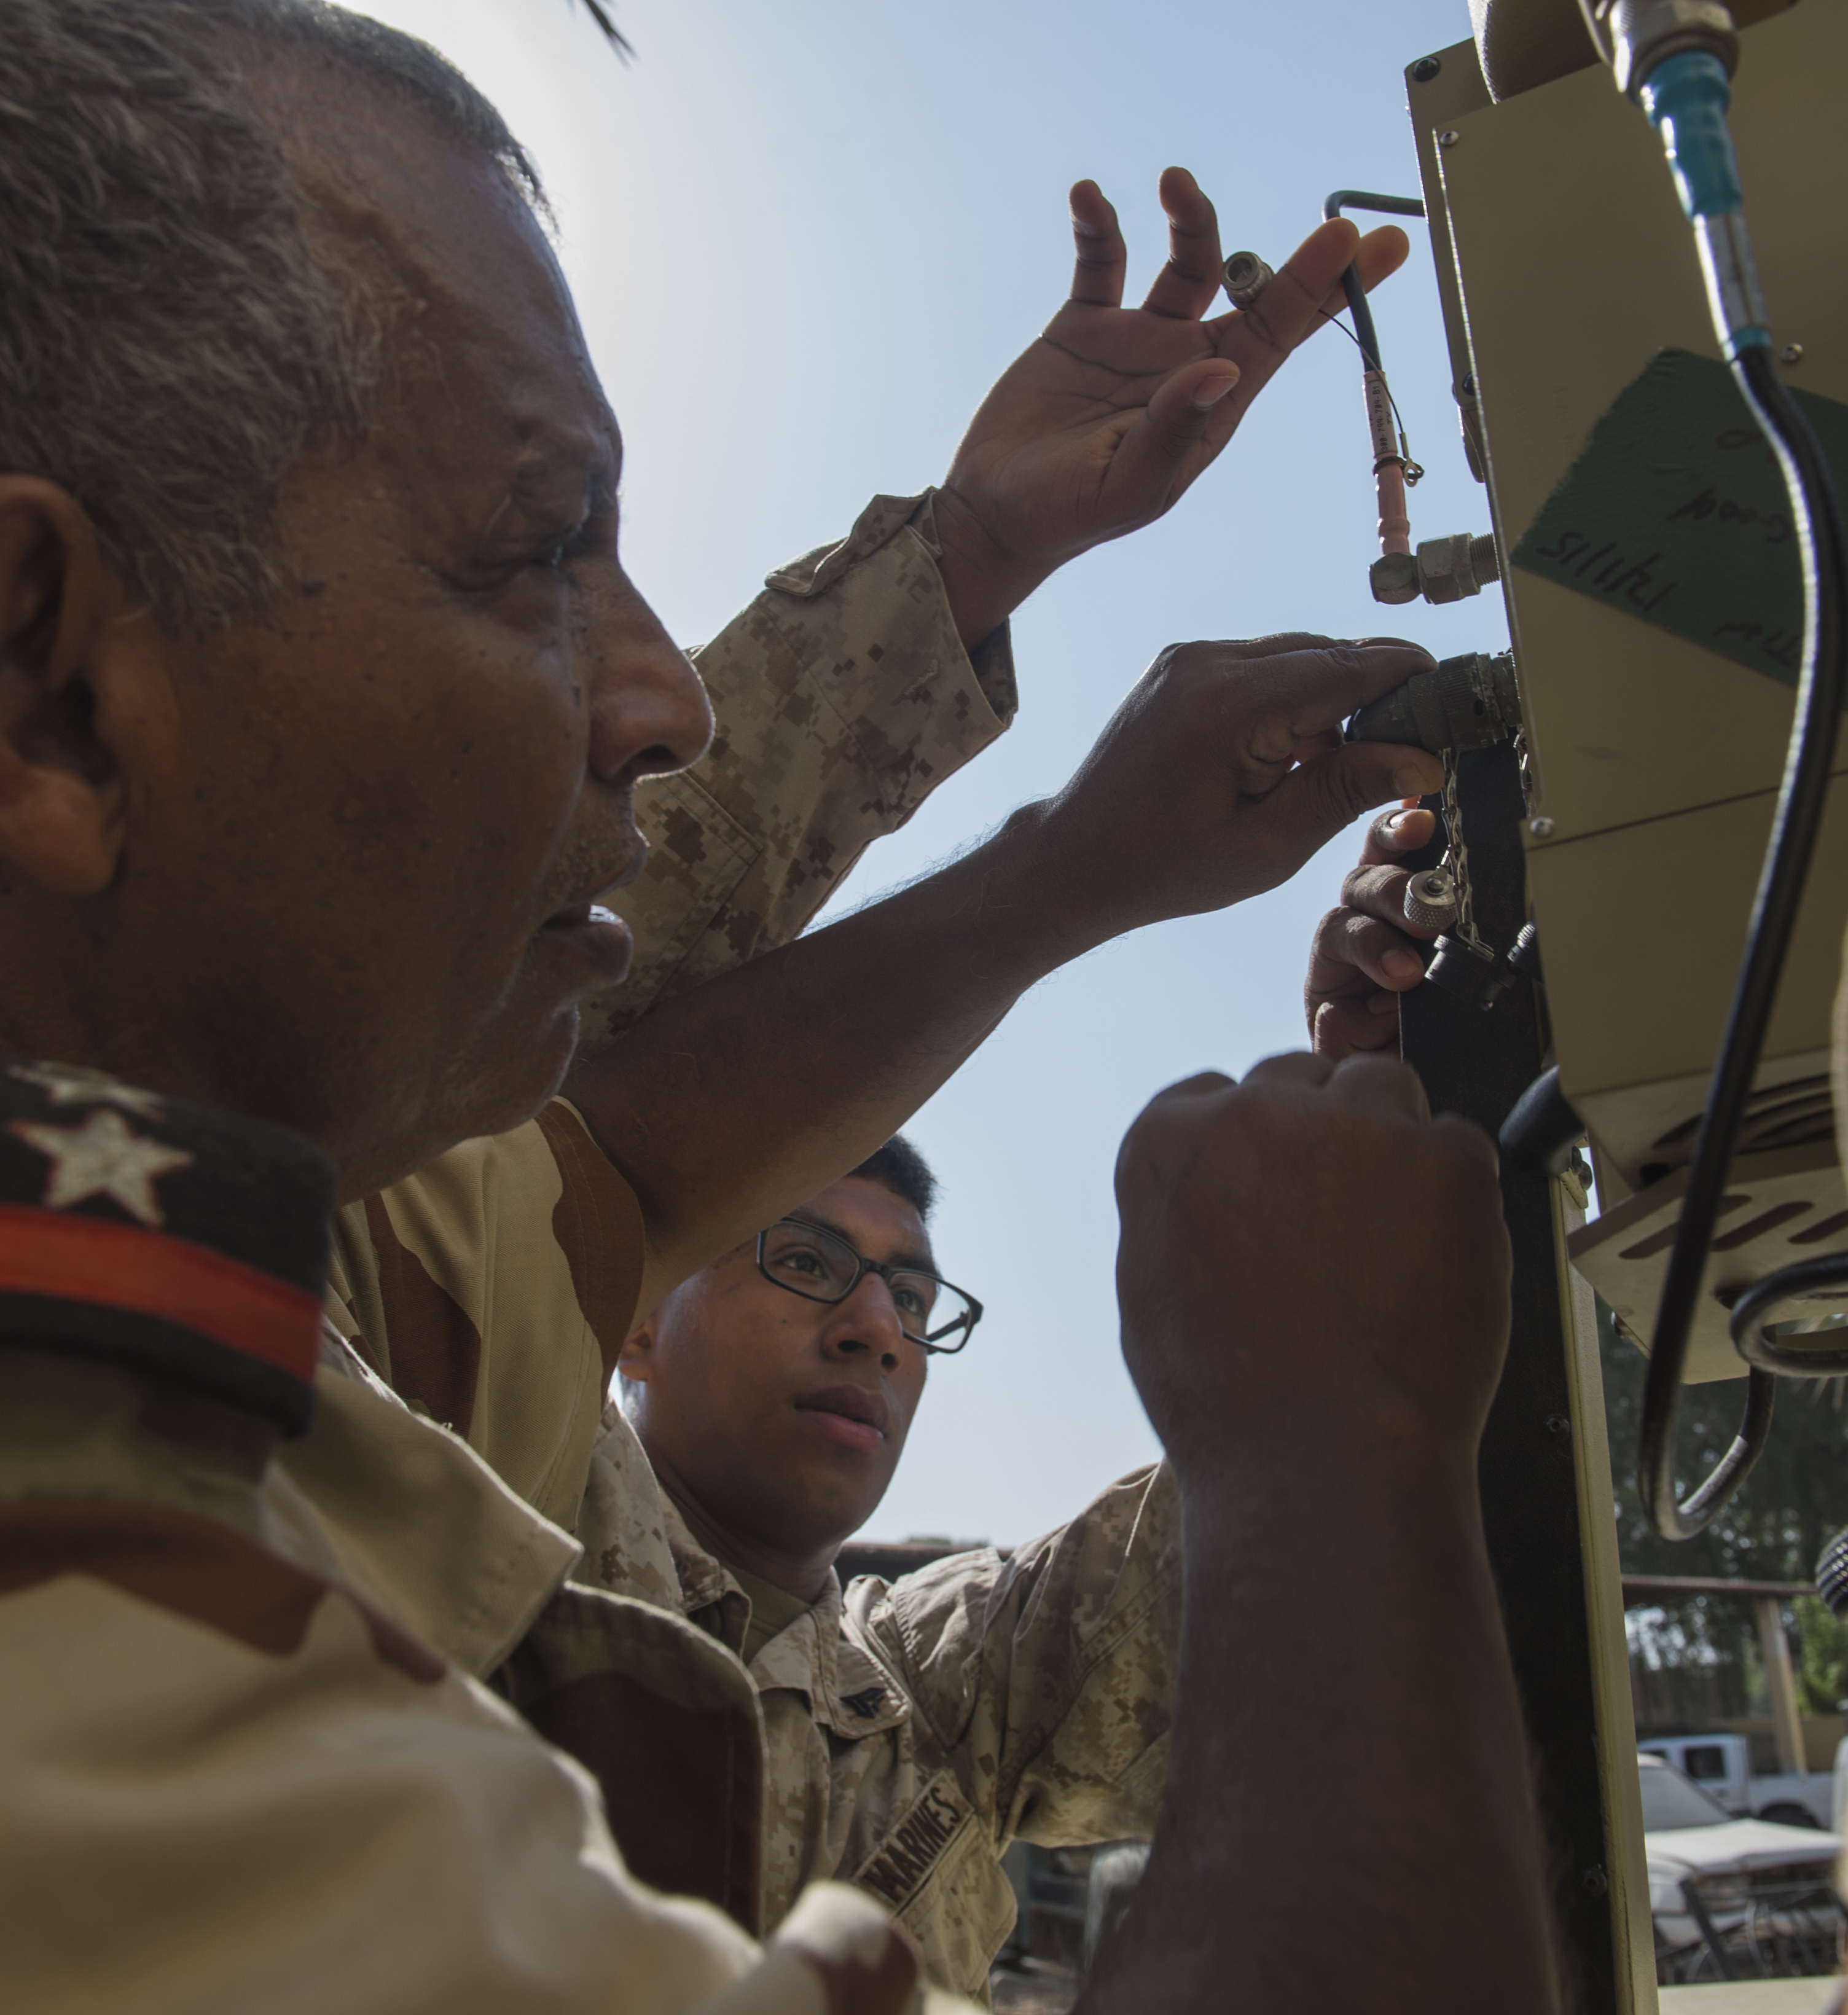 U.S. Marine Corps Cpl. Nehemias Bailon, Combined Joint Task Force-Horn of Africa, Africa Data Sharing Network (ADSN) help desk lead, helps Djiboutian Armed Forces (FAD) Capt. Amer Abdarlaziz, ADSN section chief, configure an ADSN terminal Feb. 18, 2016, in Djibouti. The ADSN is a means for African Union Mission in Somalia (AMISOM) troop contributing countries to communicate and share information with the U.S. and amongst each other. Members of CJTF-HOA taught FAD members how to install and operate a terminal, and how to access the ADSN. (U.S. Air Force photo by Senior Airman Peter Thompson)